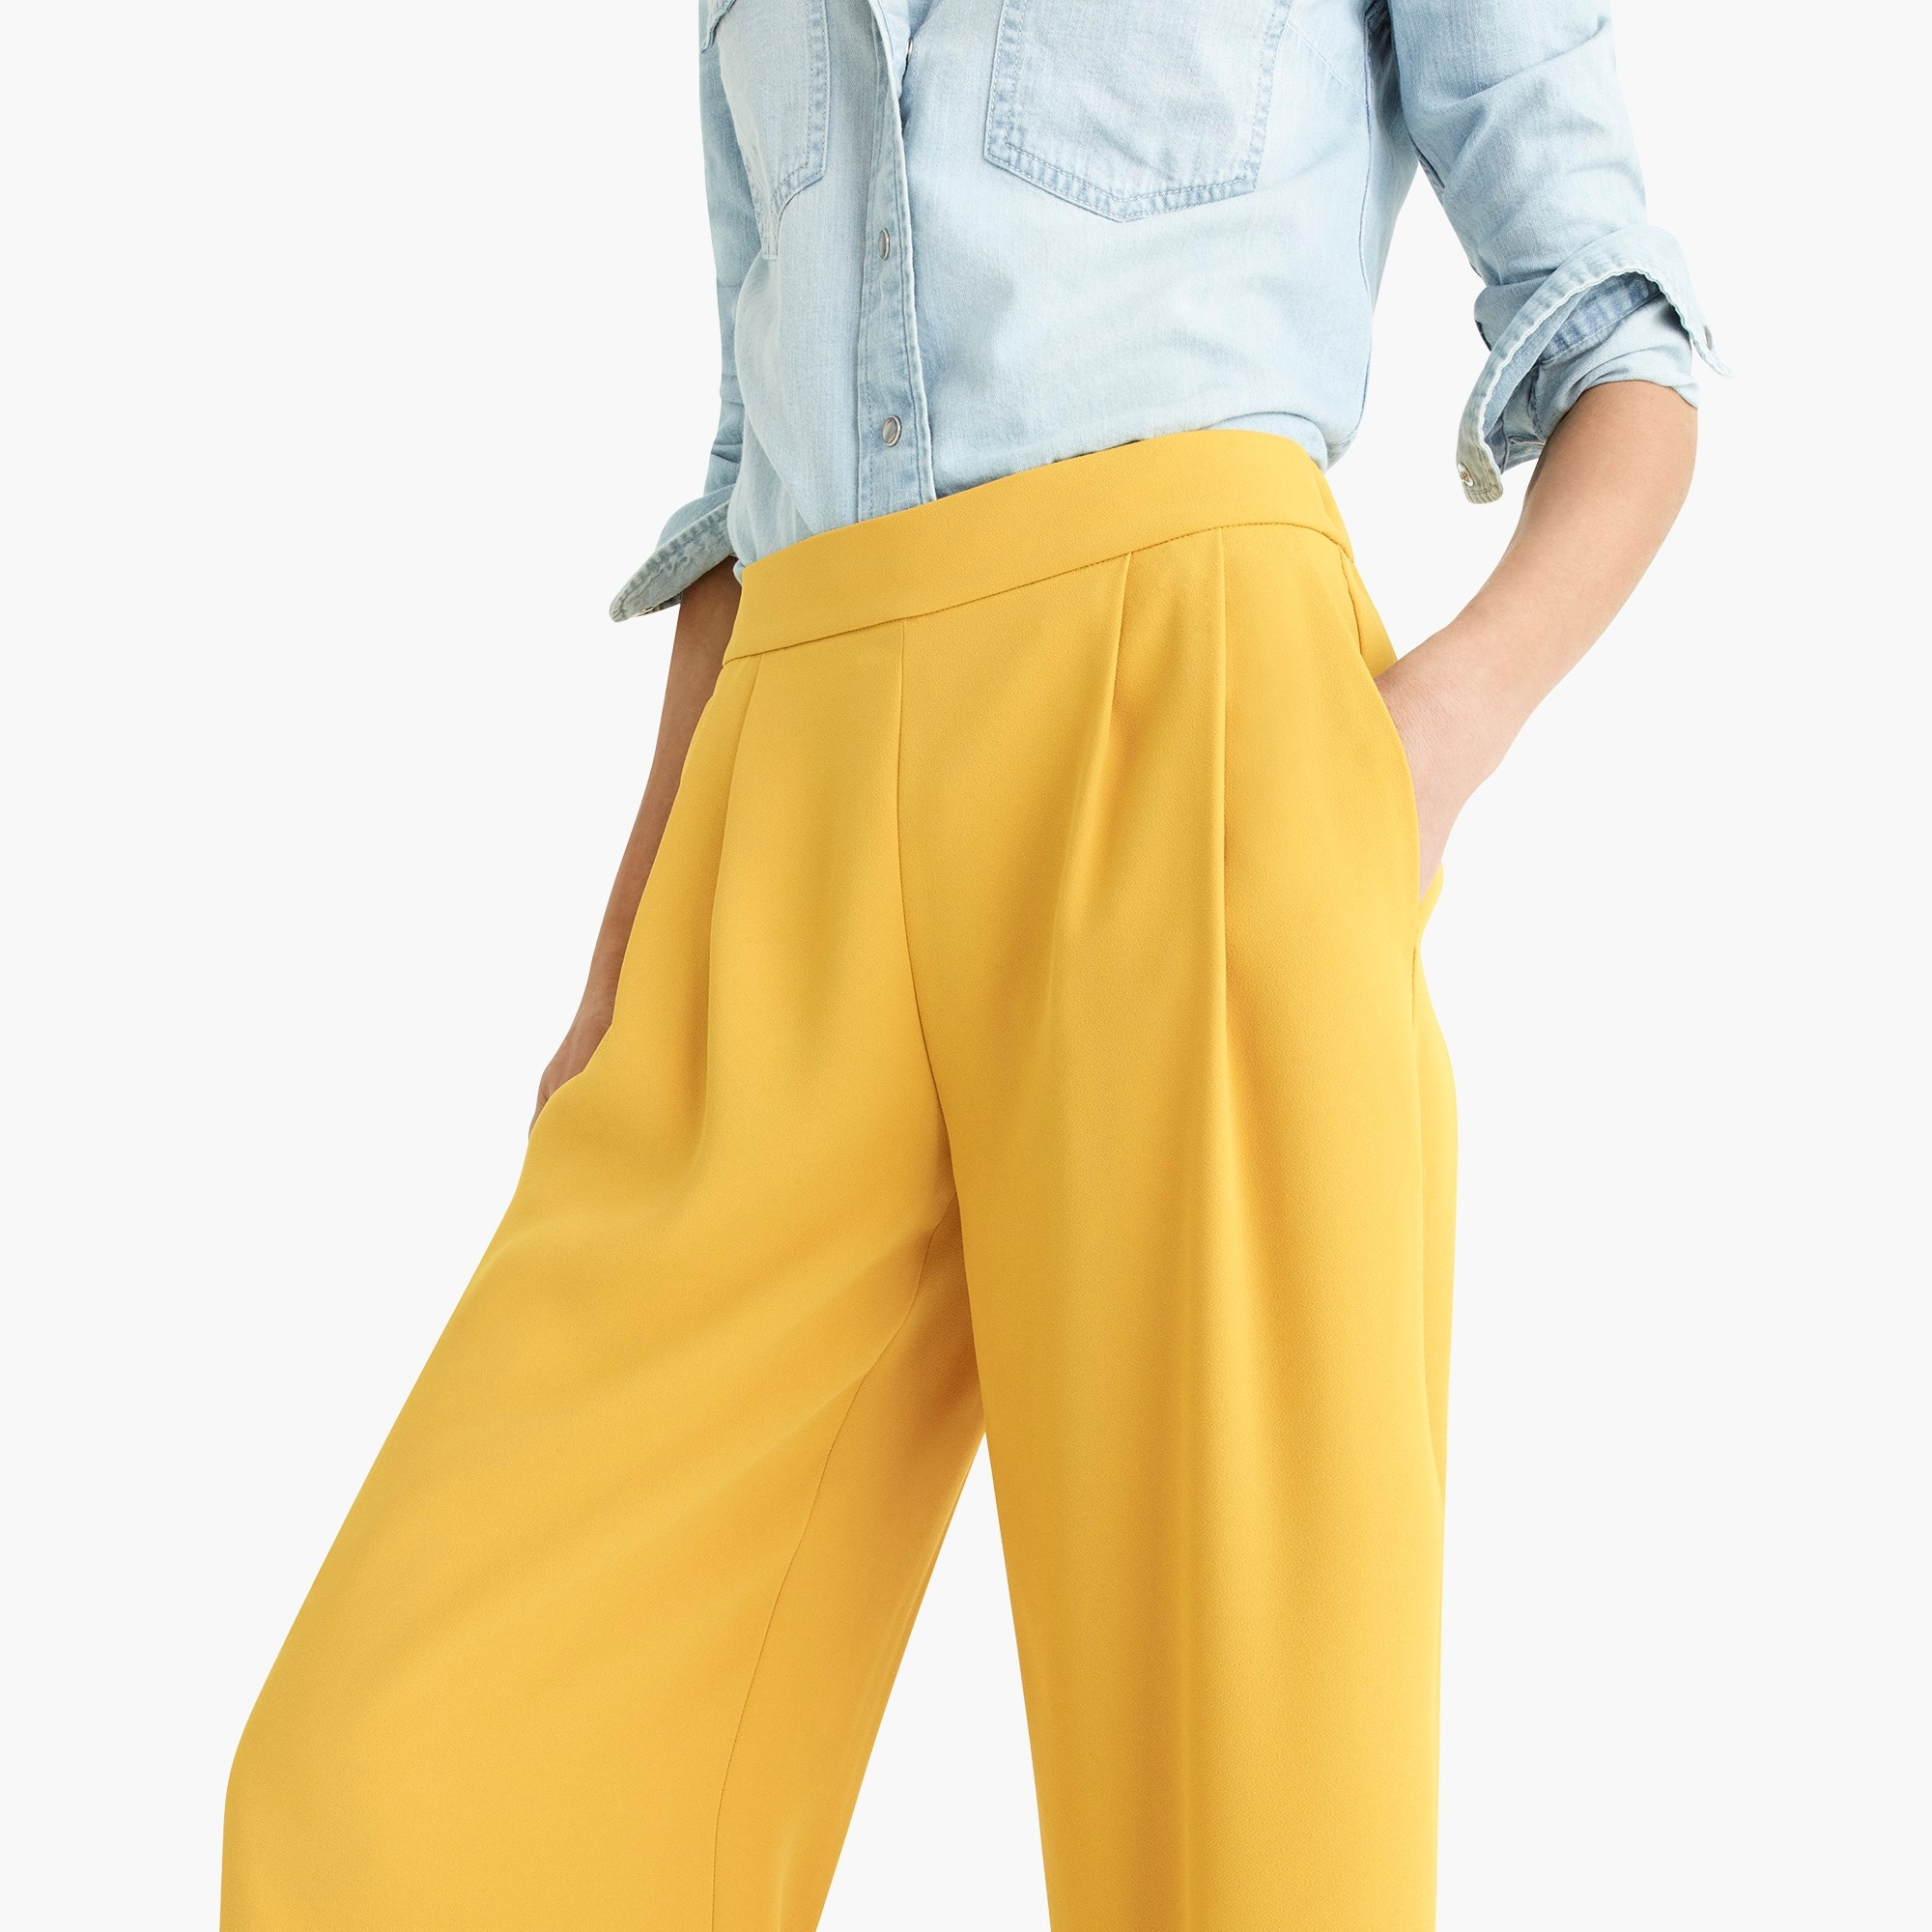 Image 3 for Petite wide-leg crop pant in 365 crepe